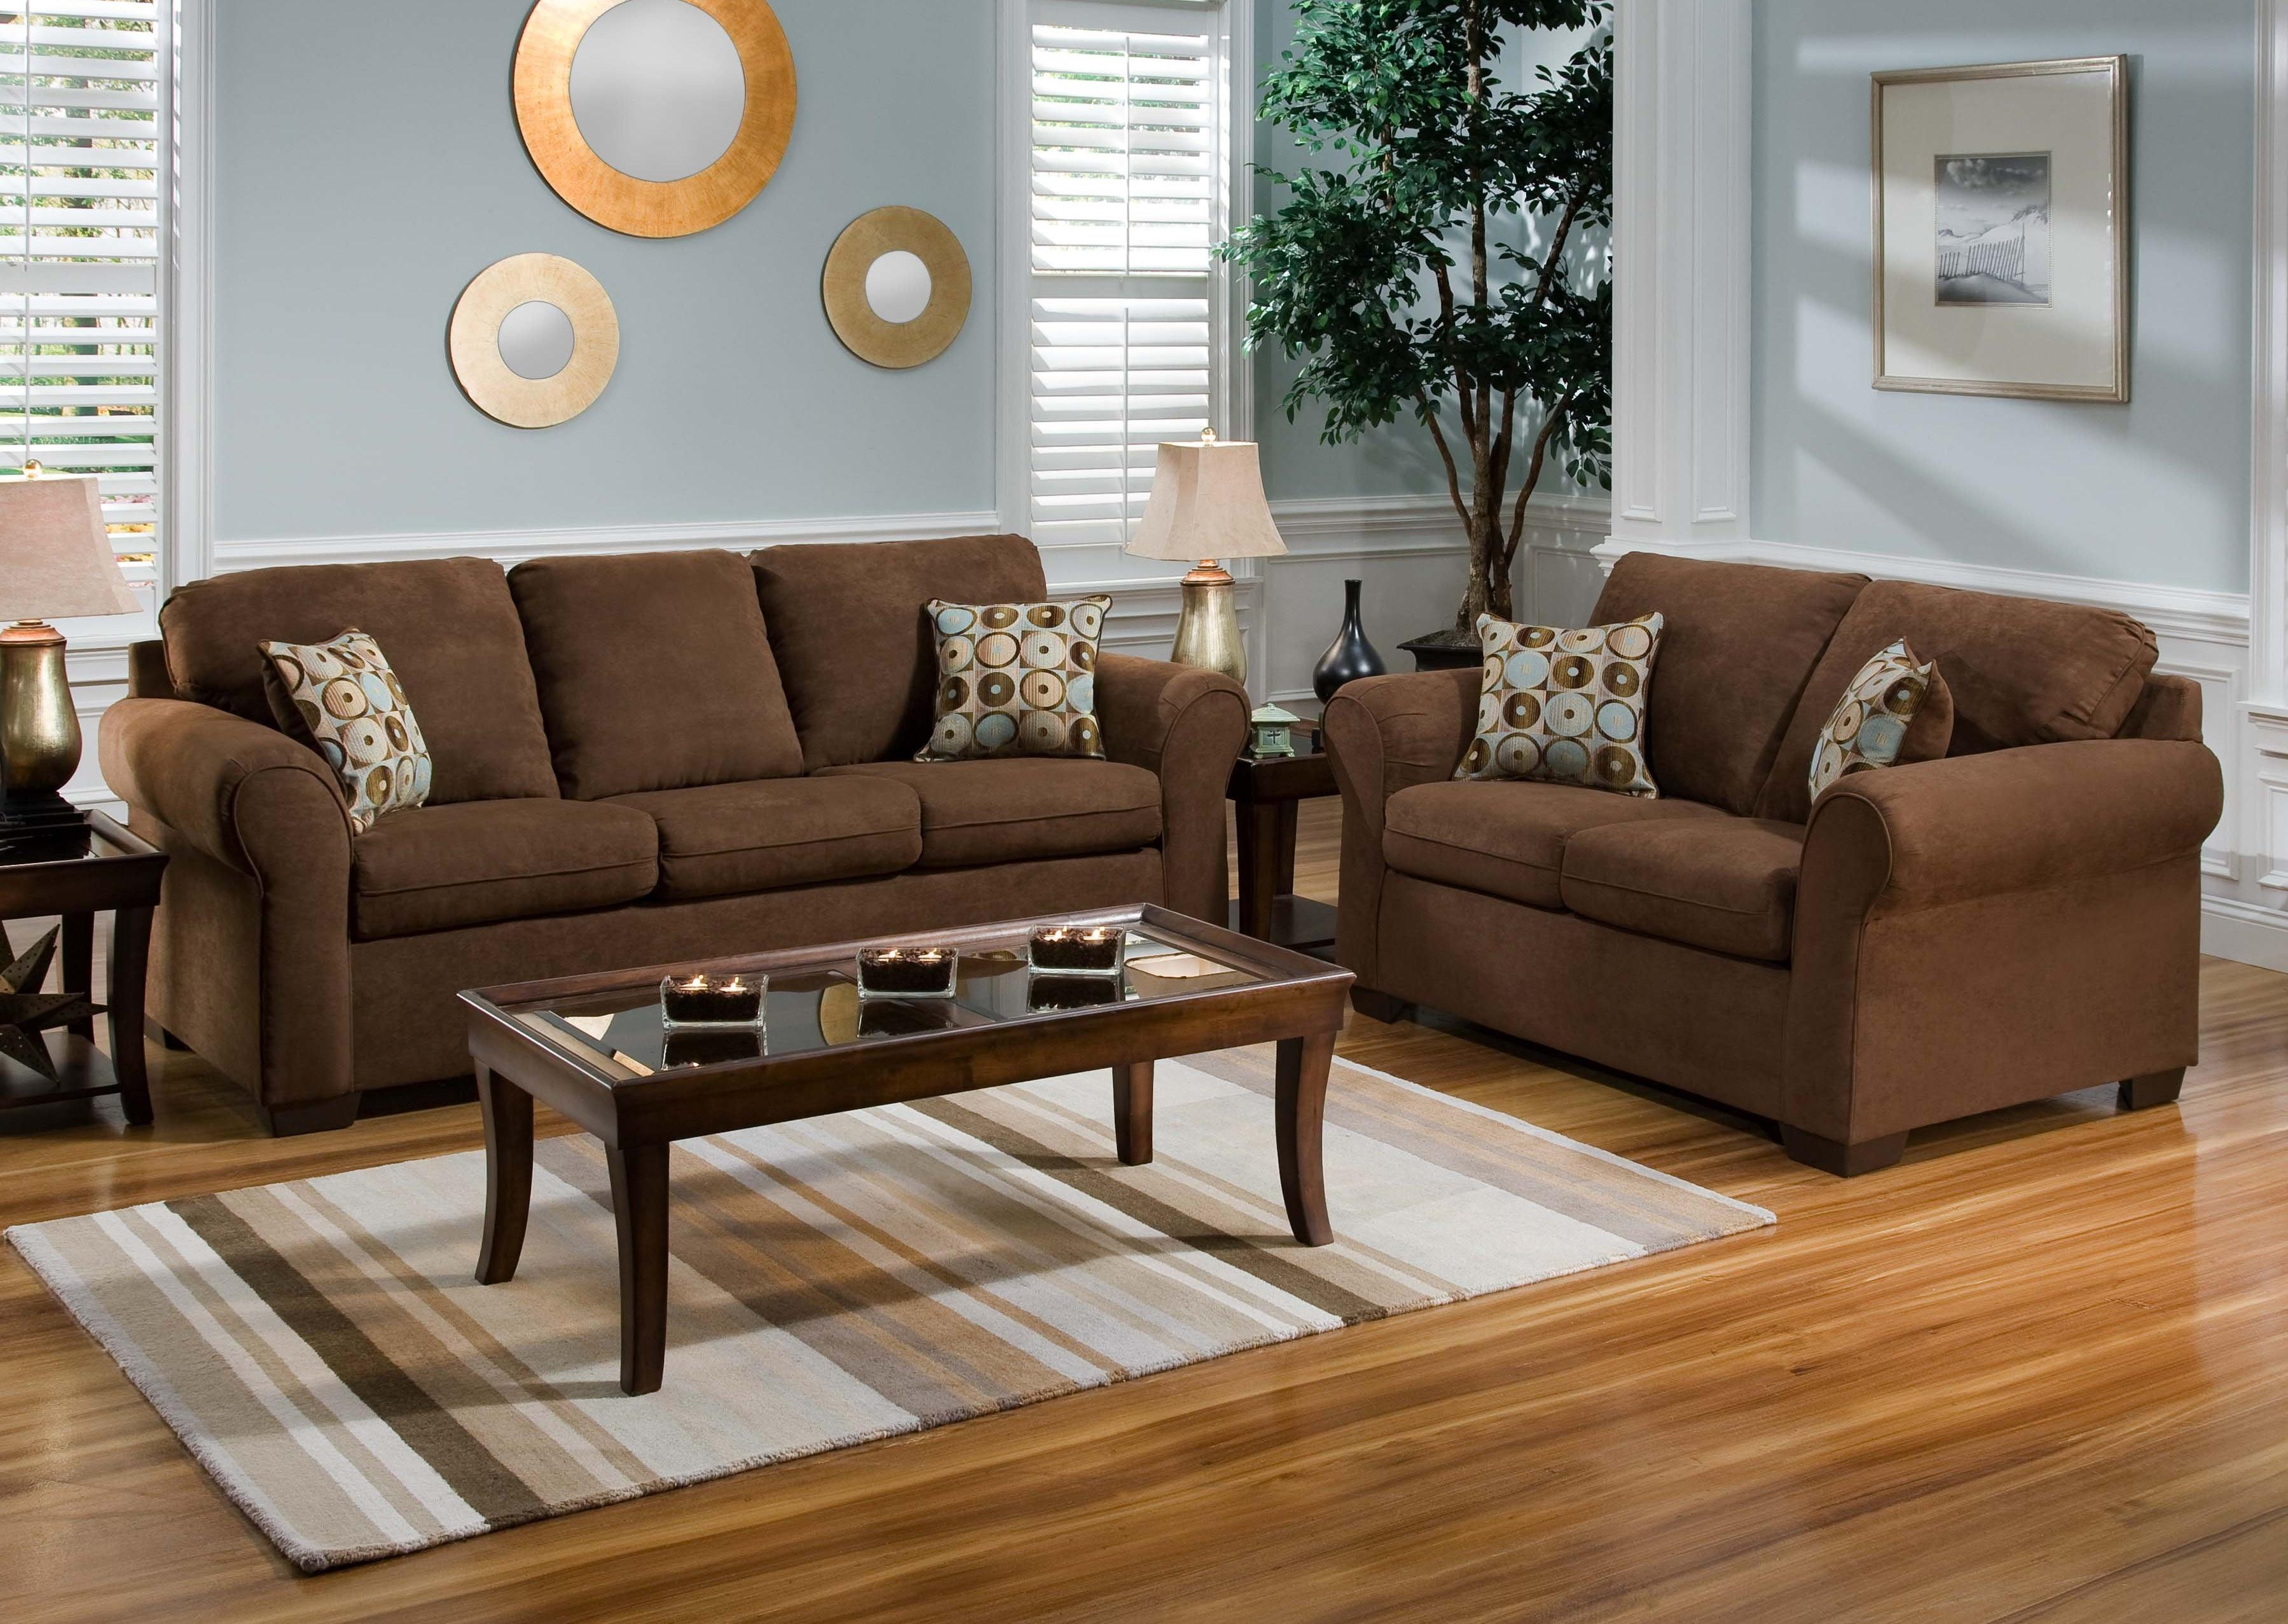 Image of: Paint Color Ideas For Living Room With Brown Furniture